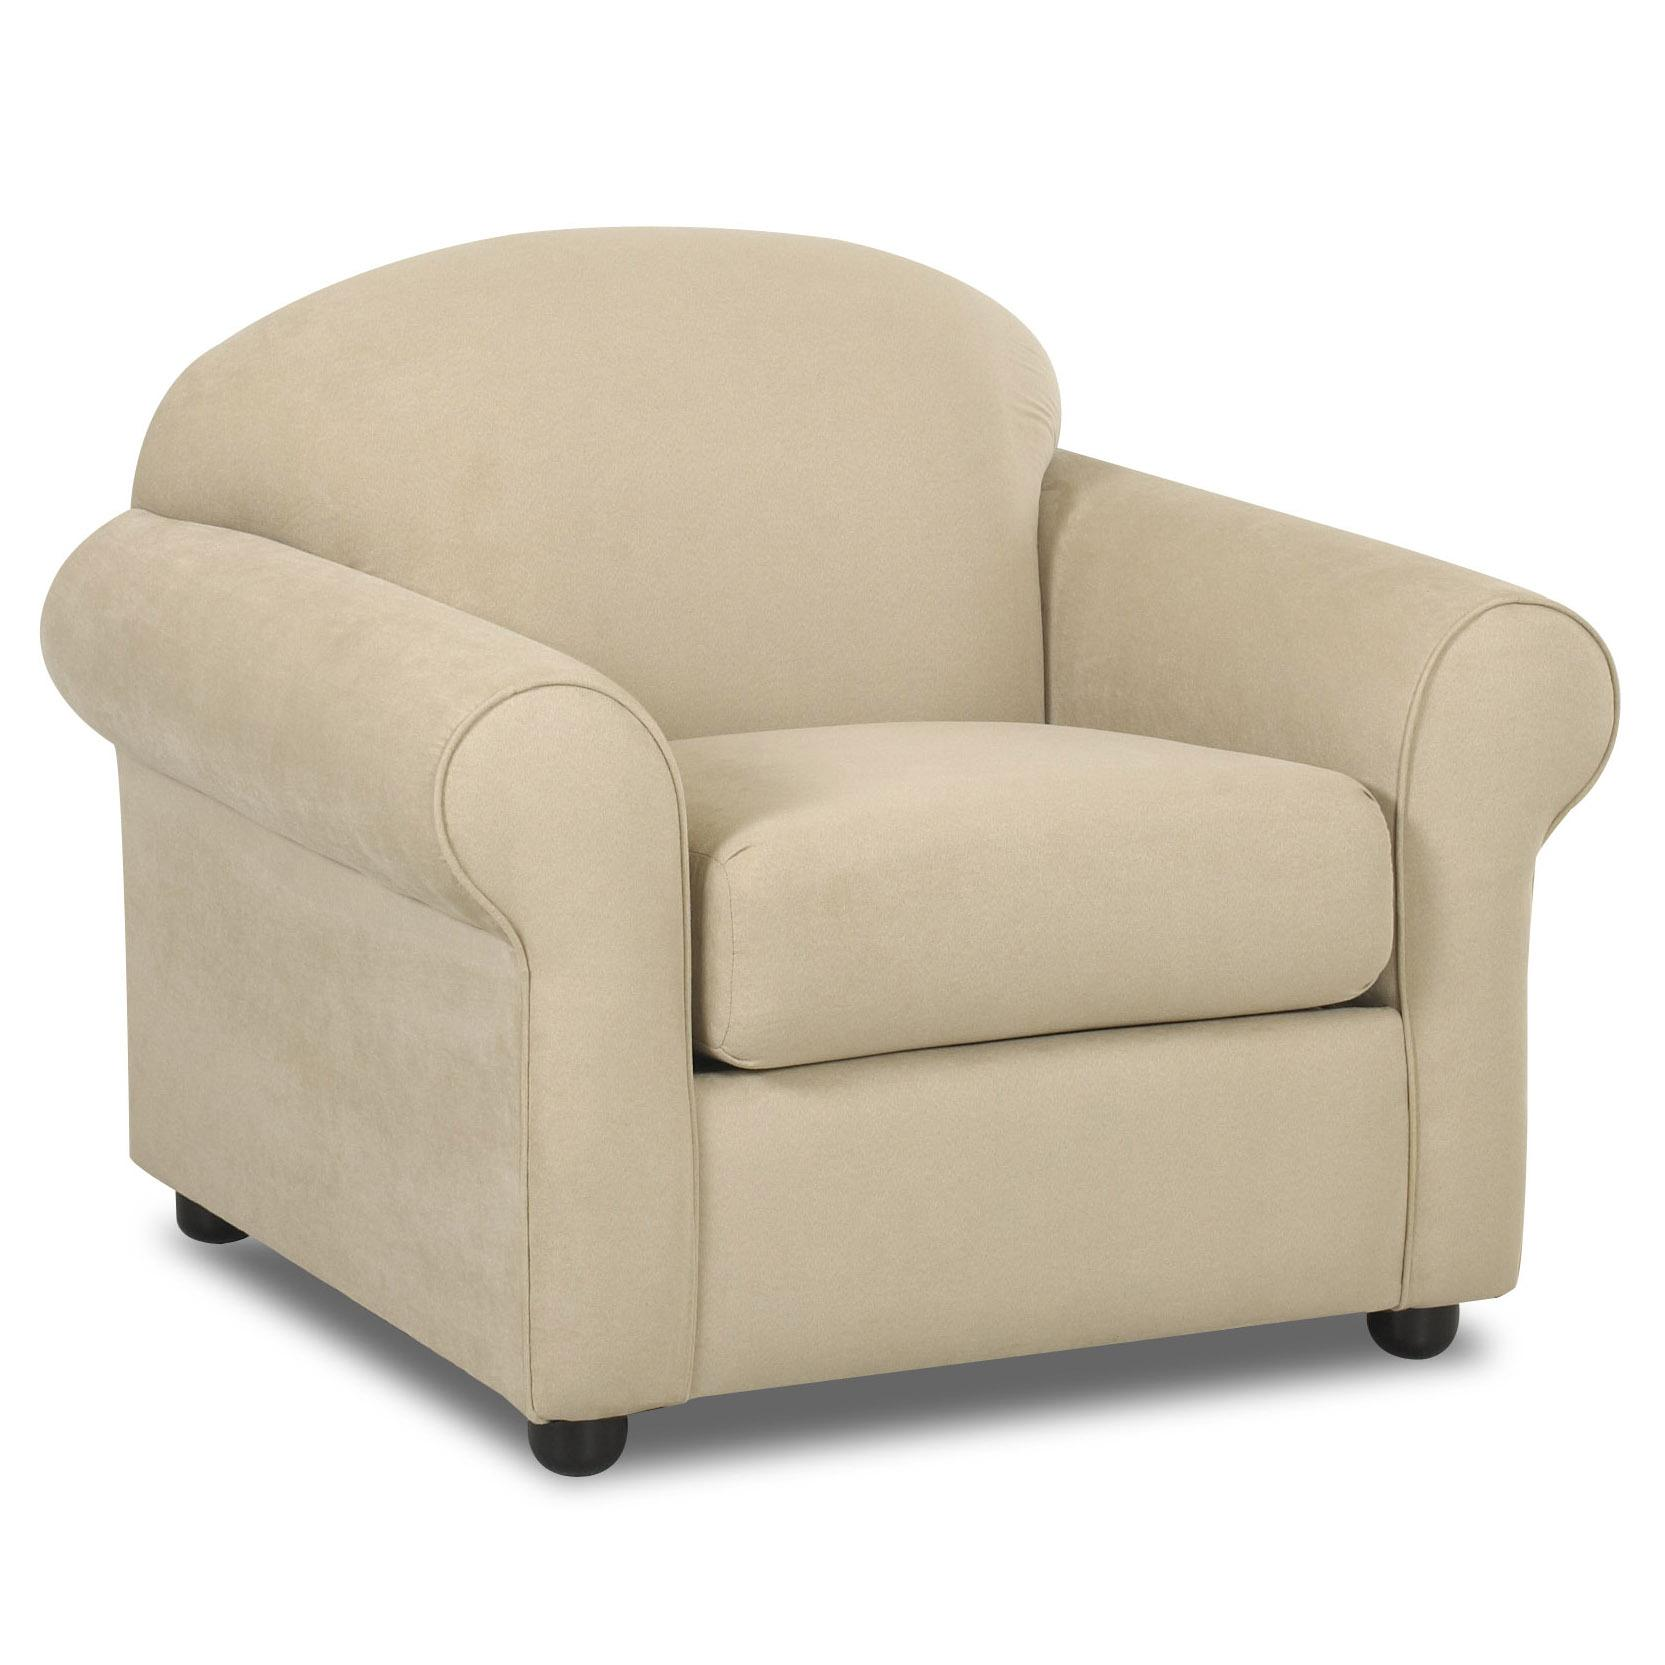 Klaussner Possibilities Low Profile Chair  Sheelys